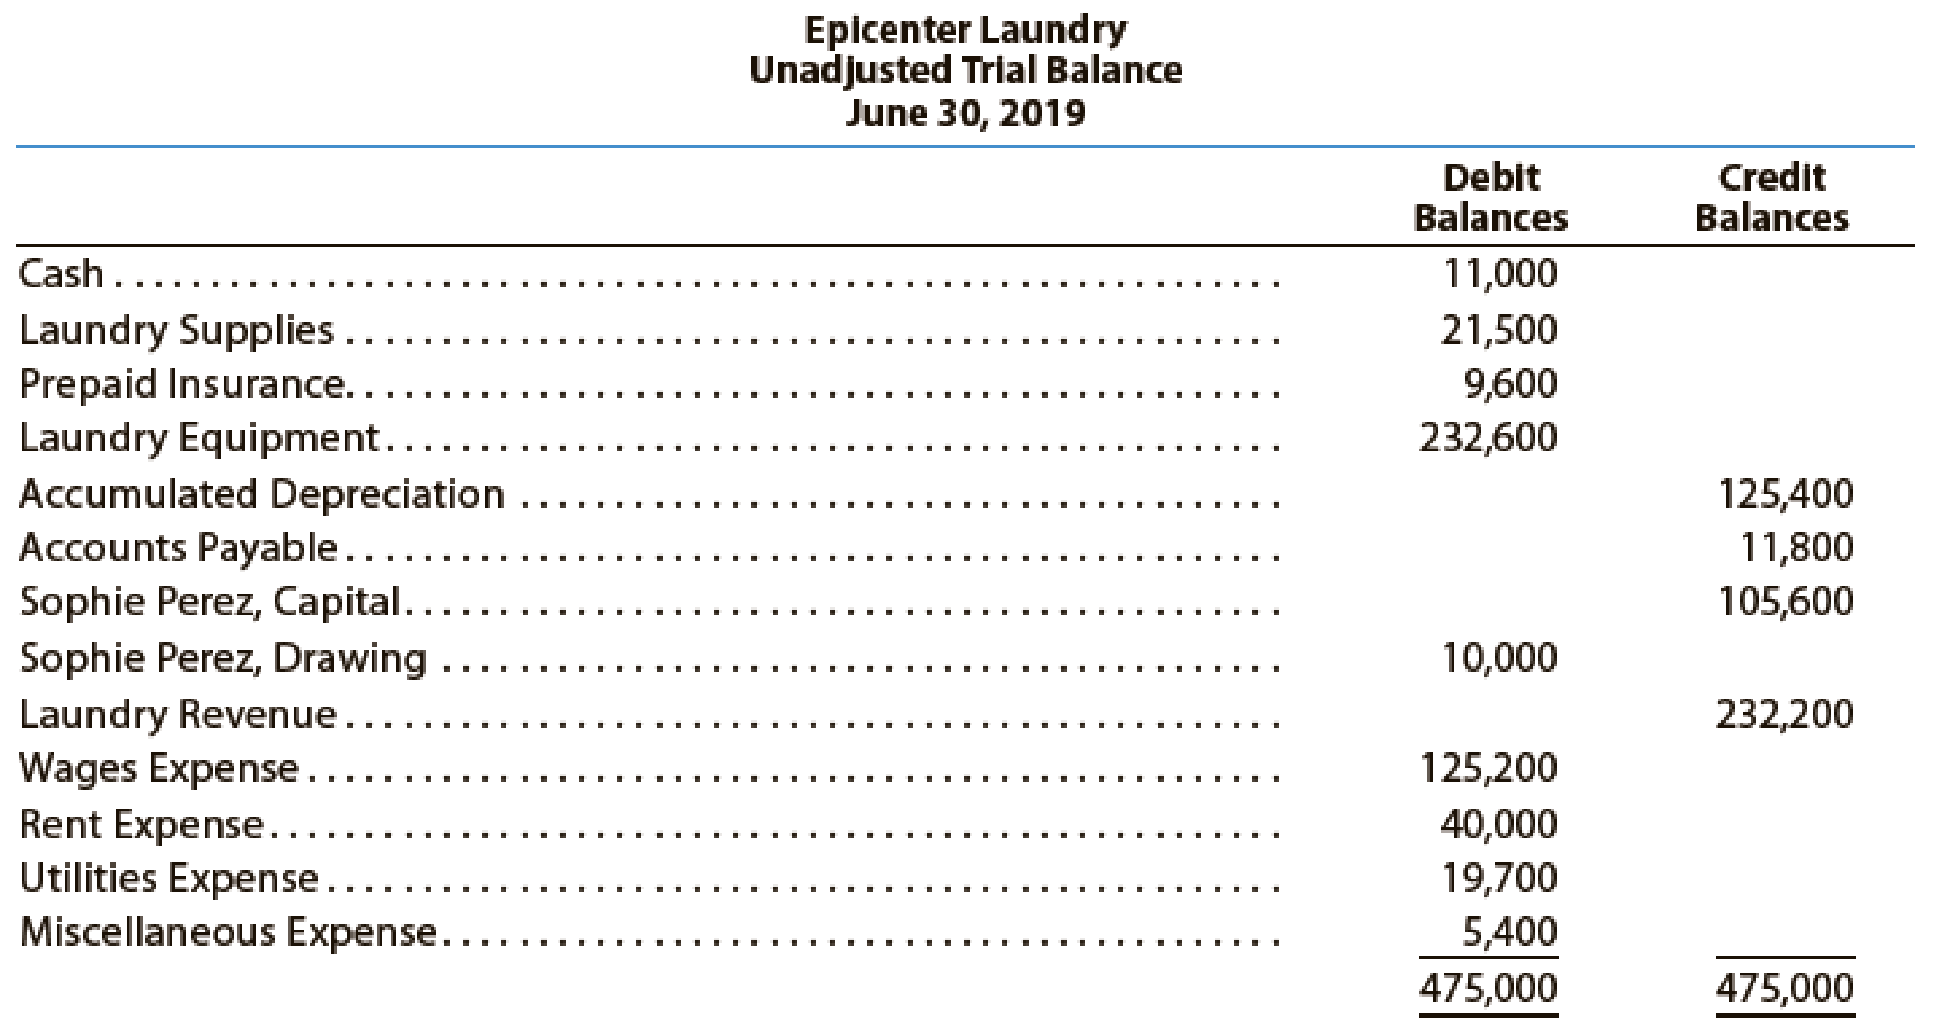 The Unadjusted Trial Balance Of Epicenter Laundry At June